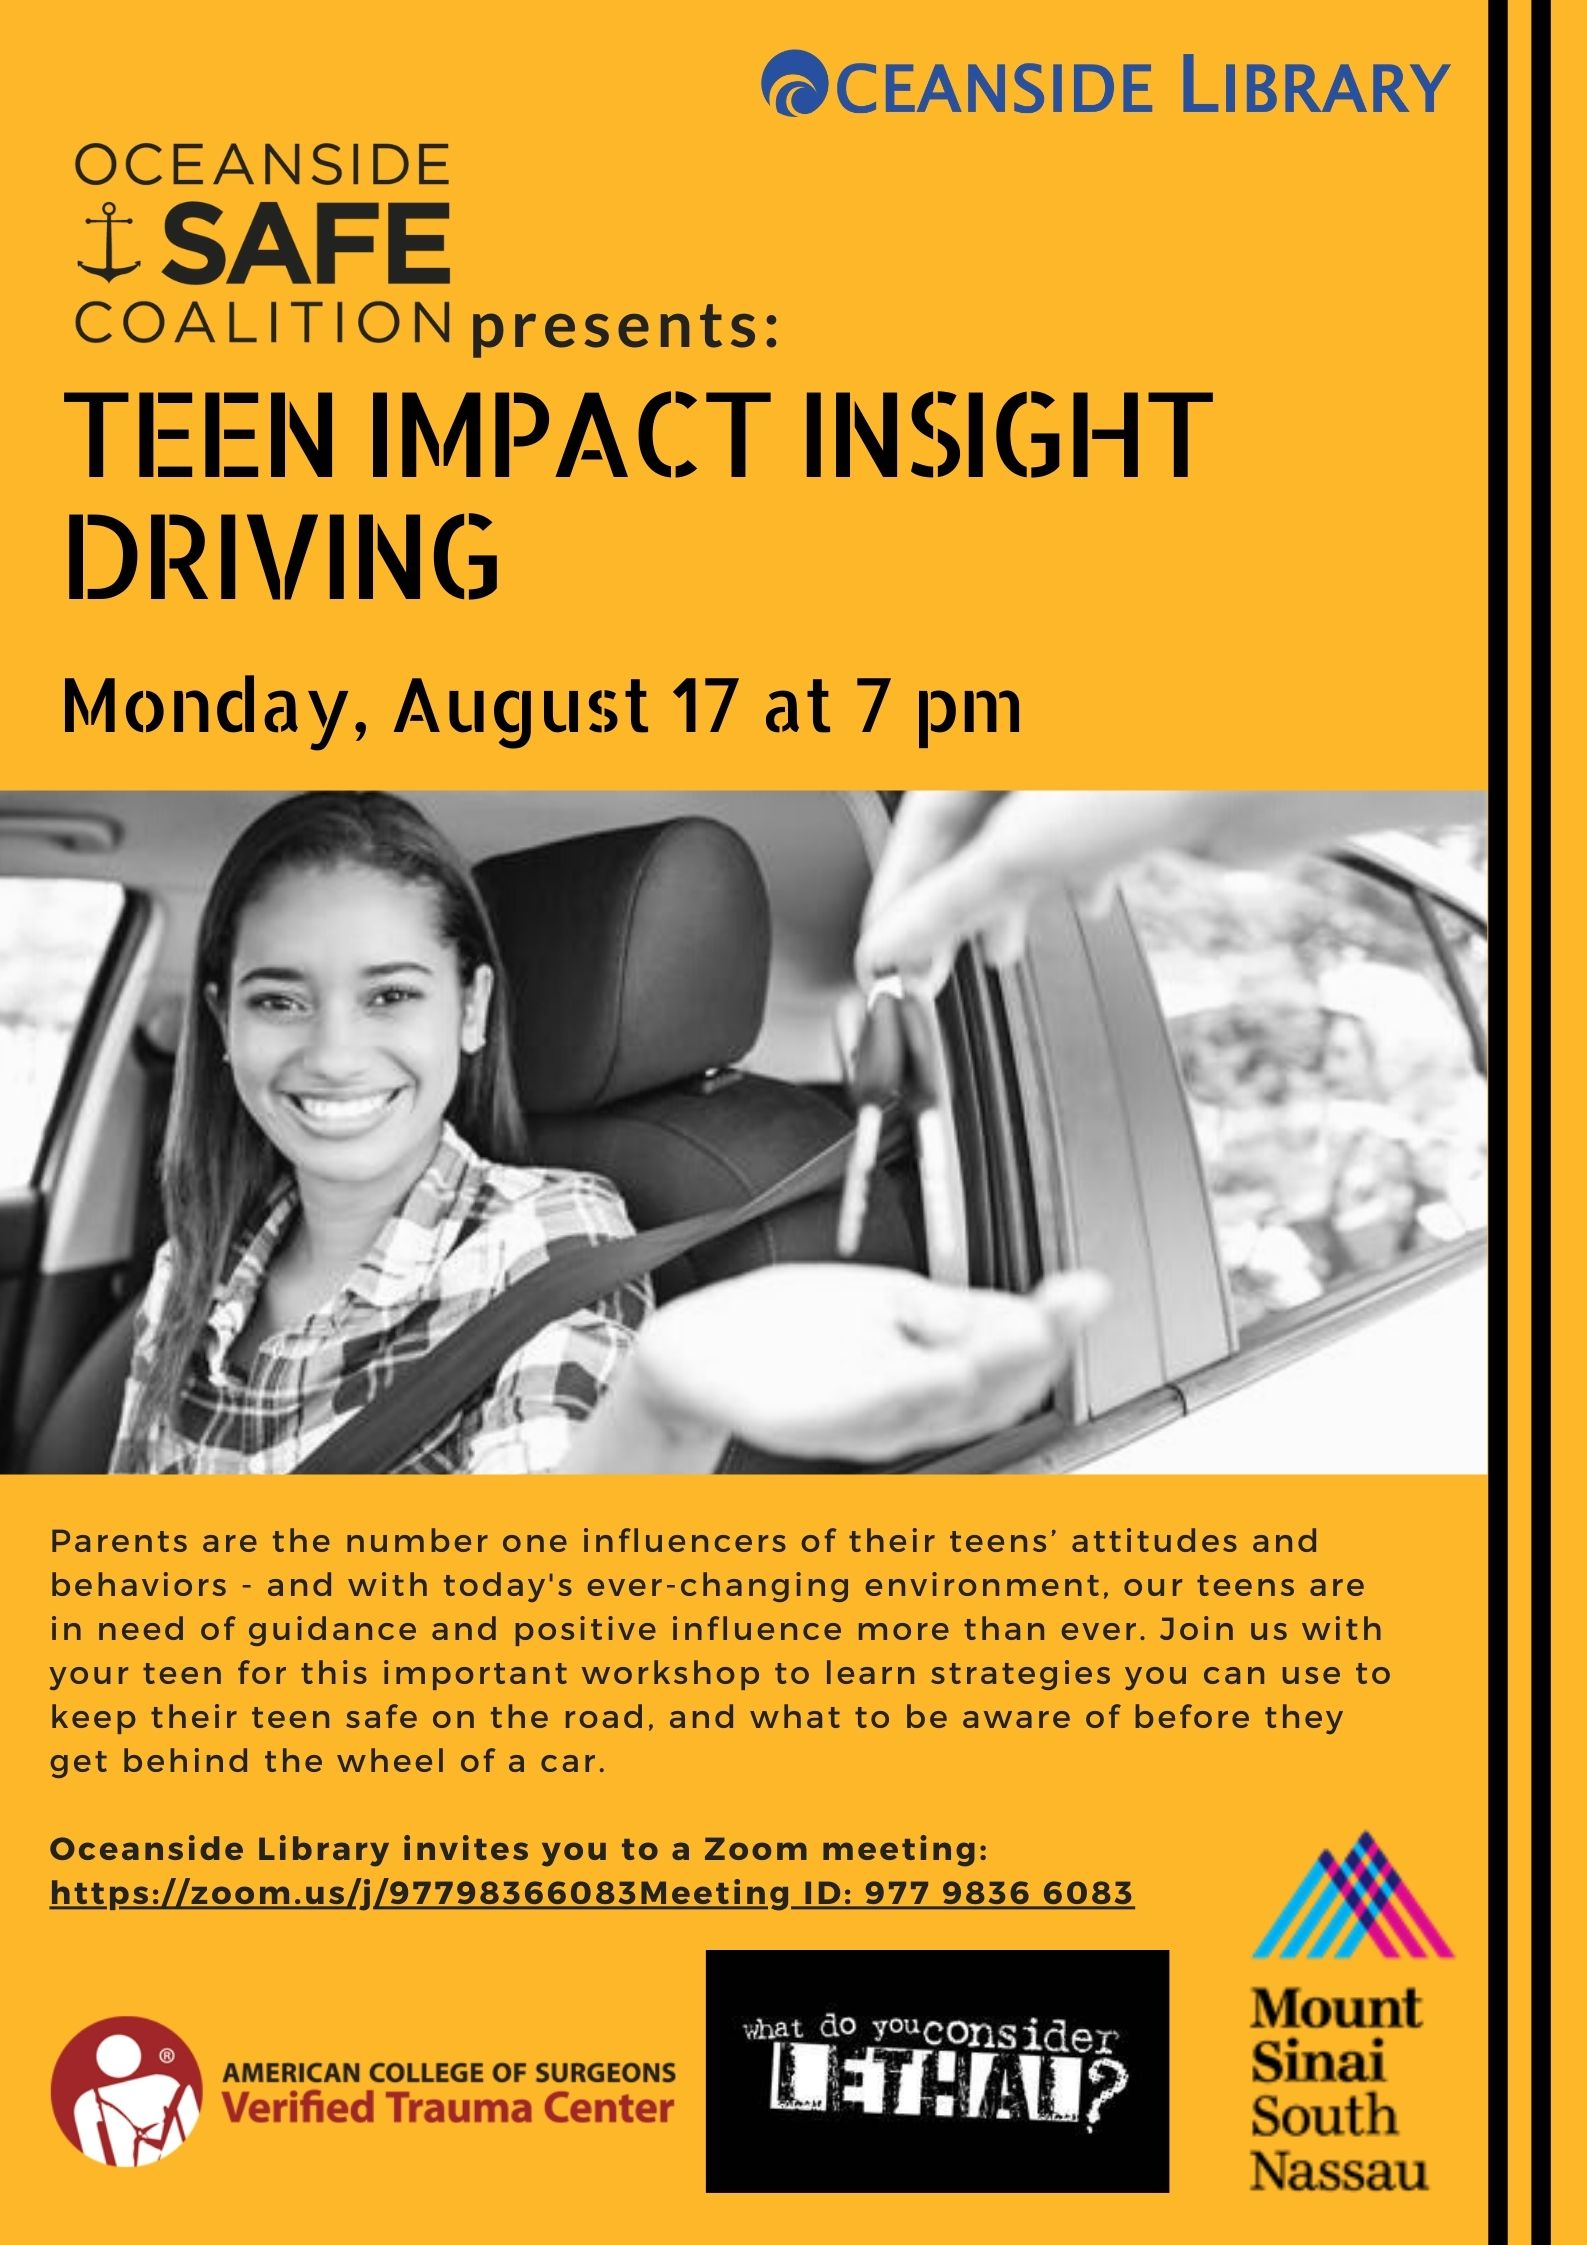 Oceanside SAFE Coalition Presents: Teen Impact Insight Driving